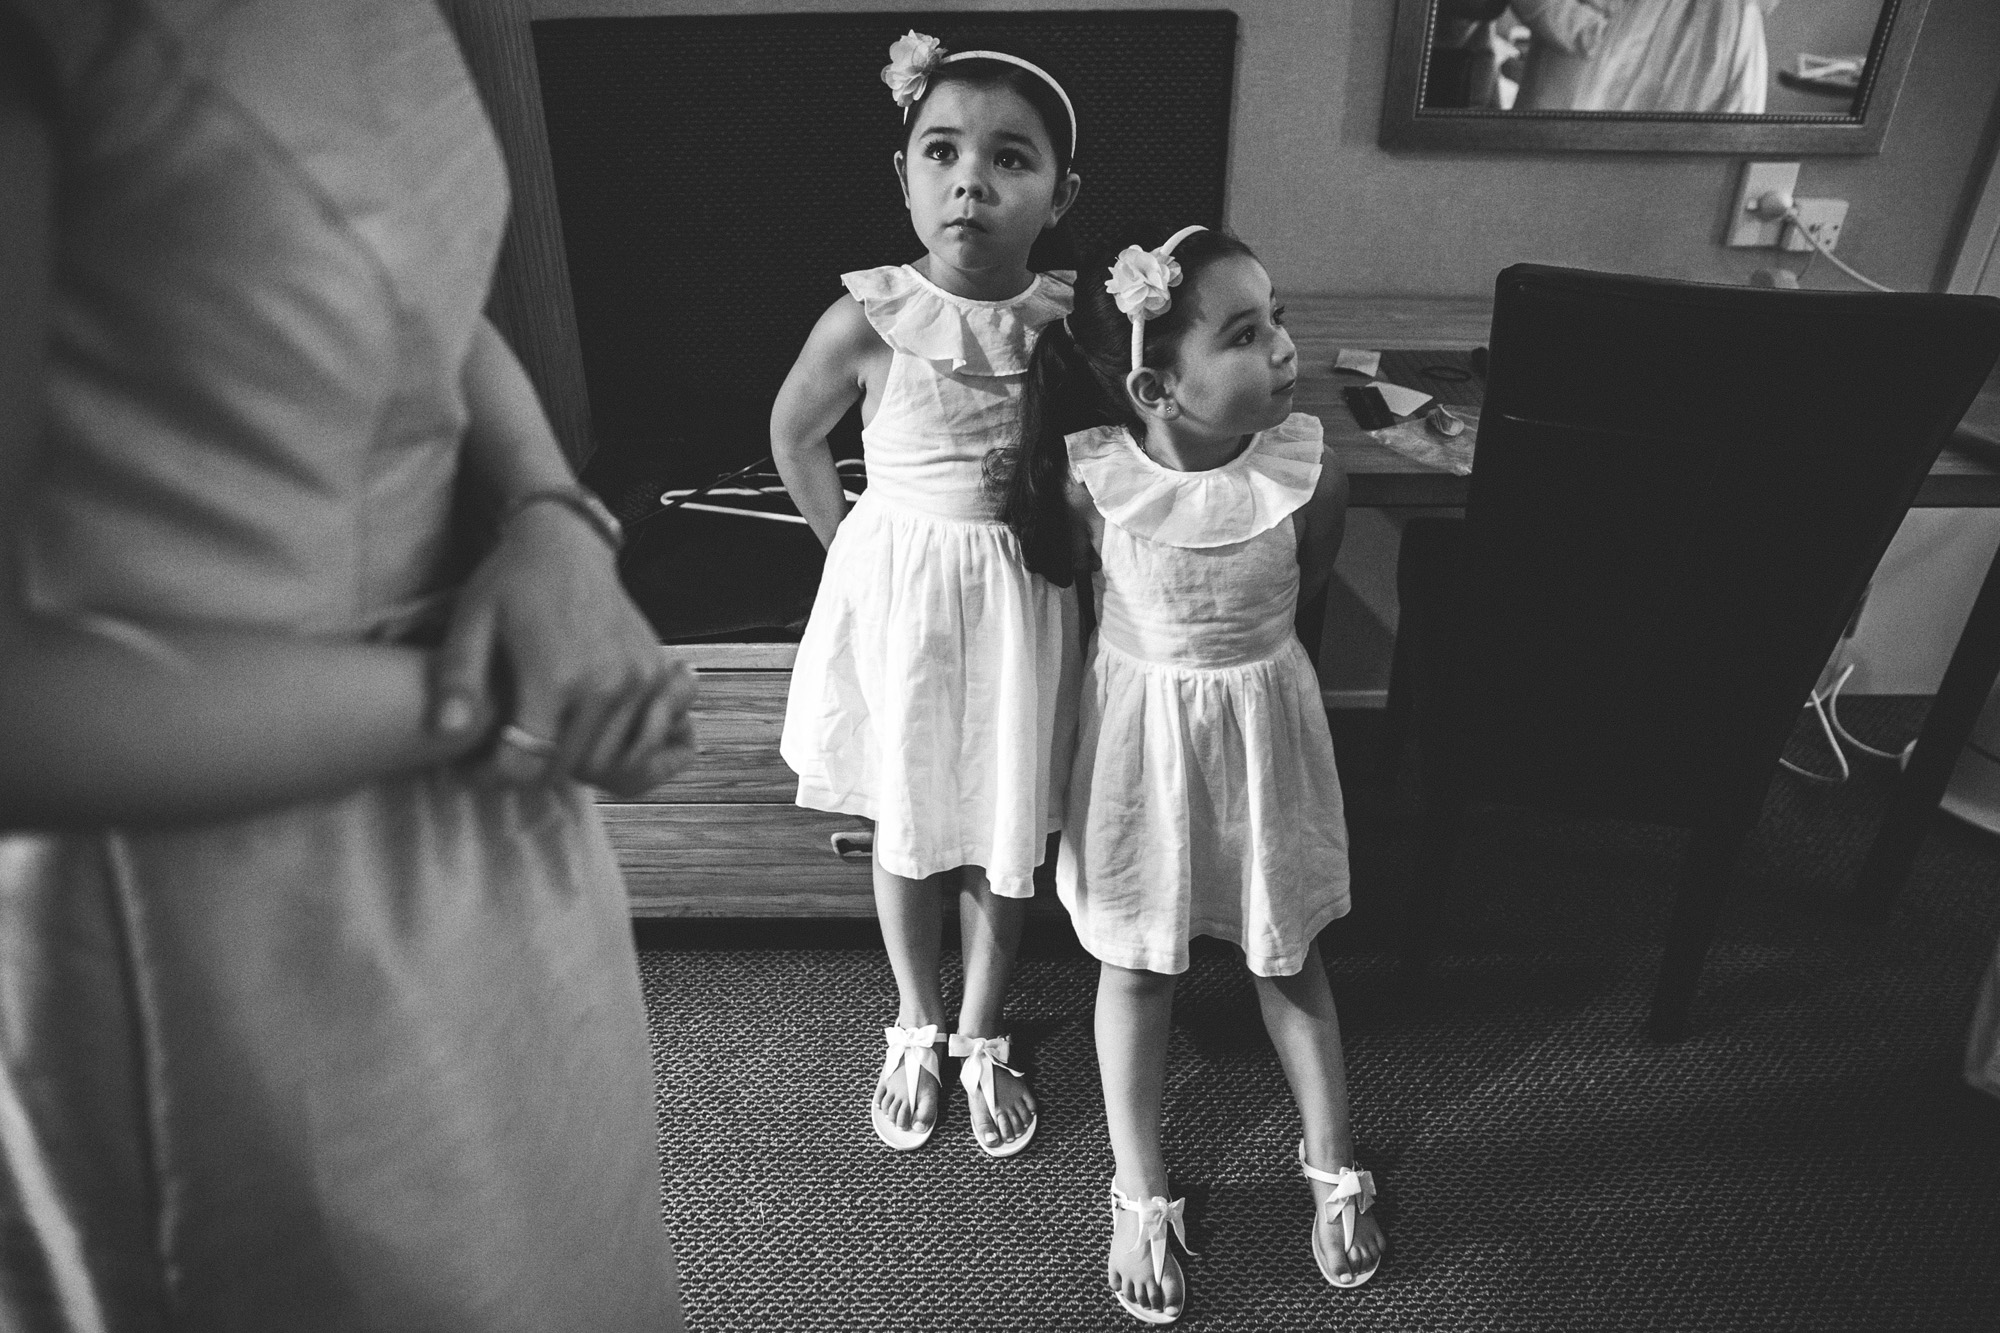 Sarah_McEvoy_Wellington_Wedding_Photographer_034.jpg